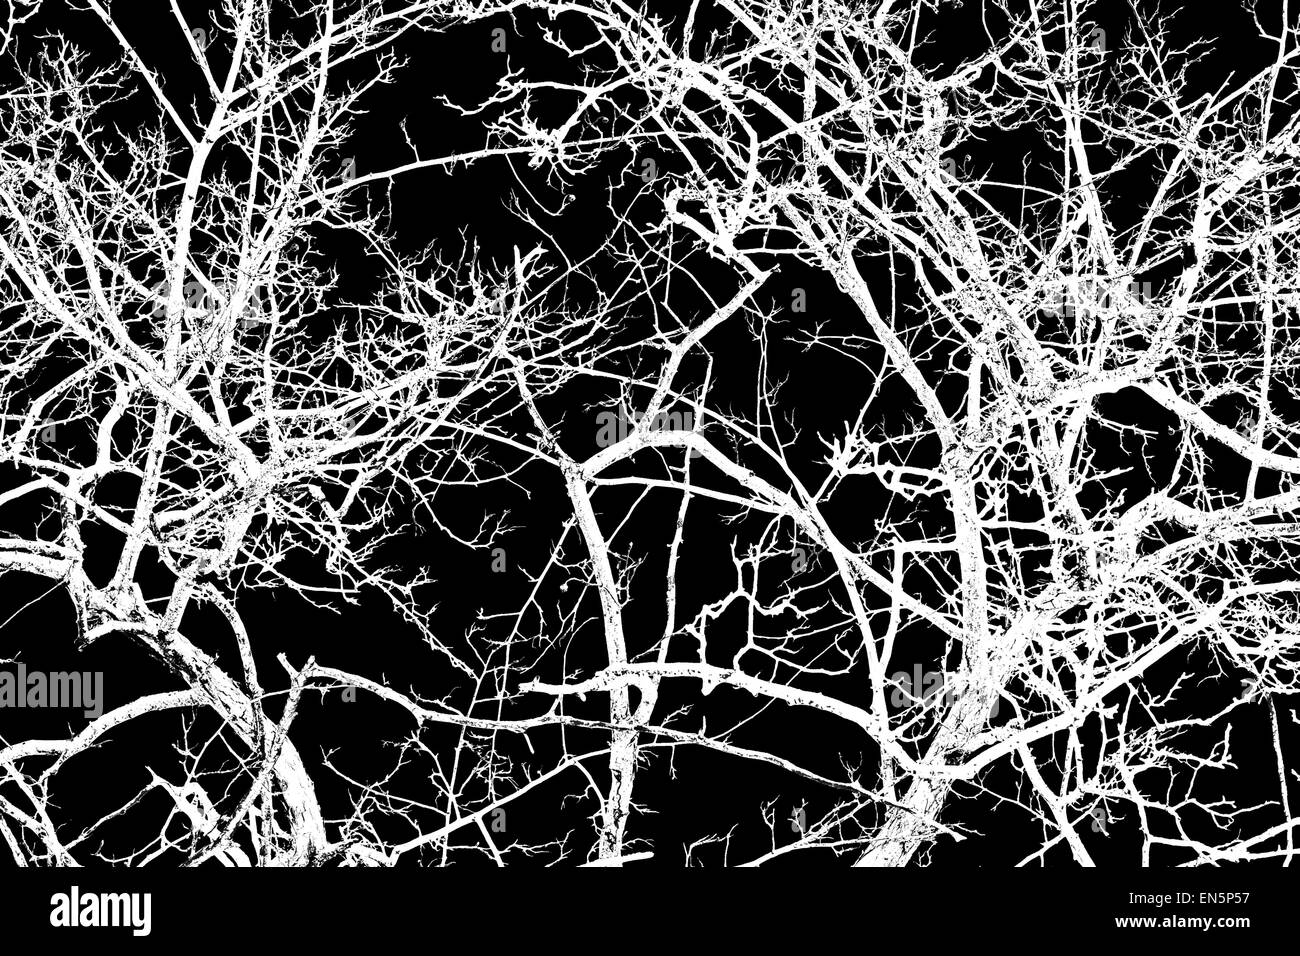 Tree branches and twigs of white and gray color isolated against black background. - Stock Image